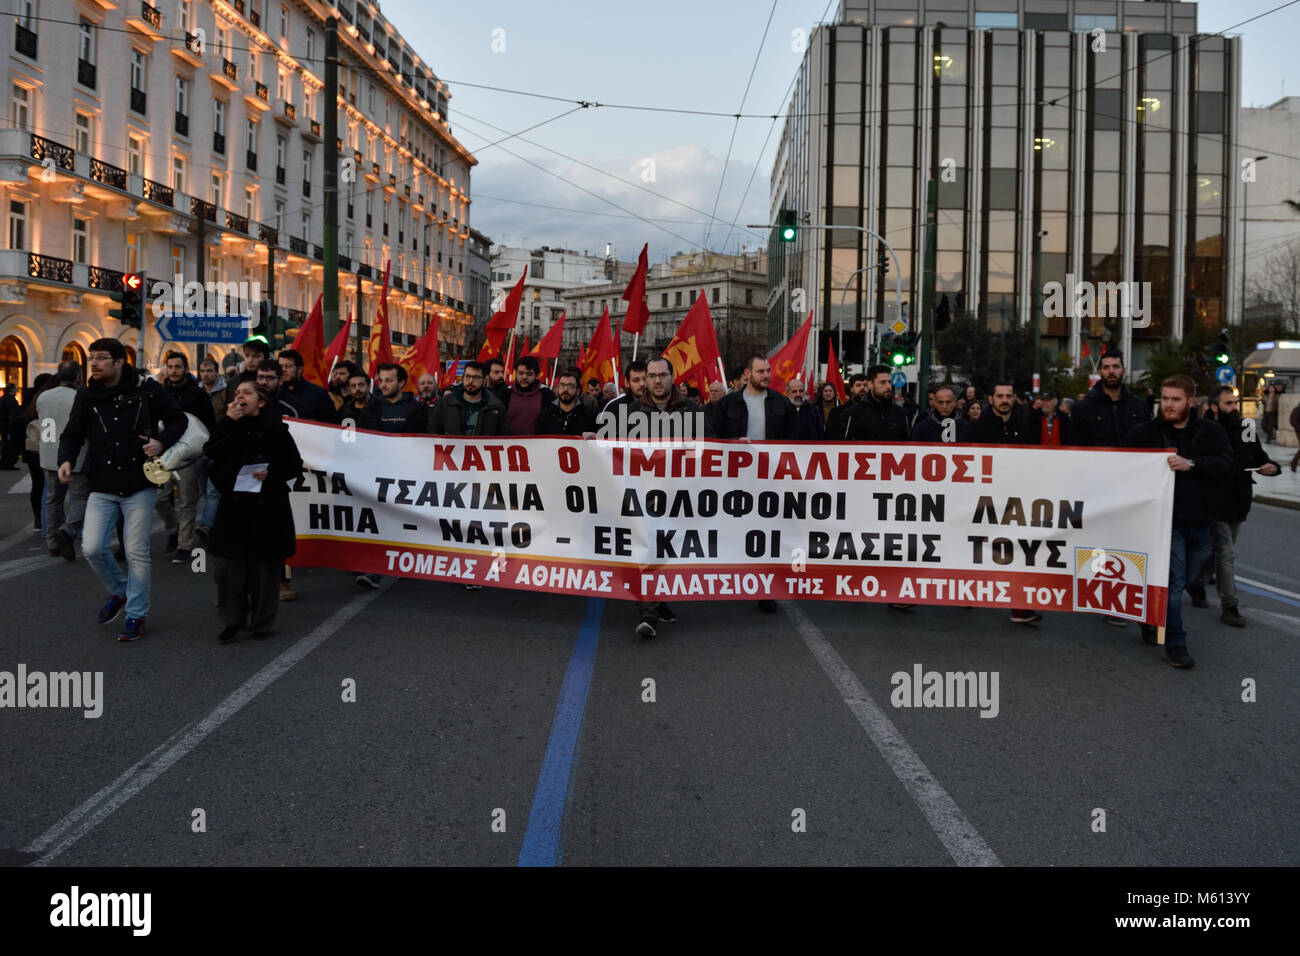 Athens, Greece, 27th February, 2018. Greek Communists march at Syntagma Square protesting against the policies of - Stock Image